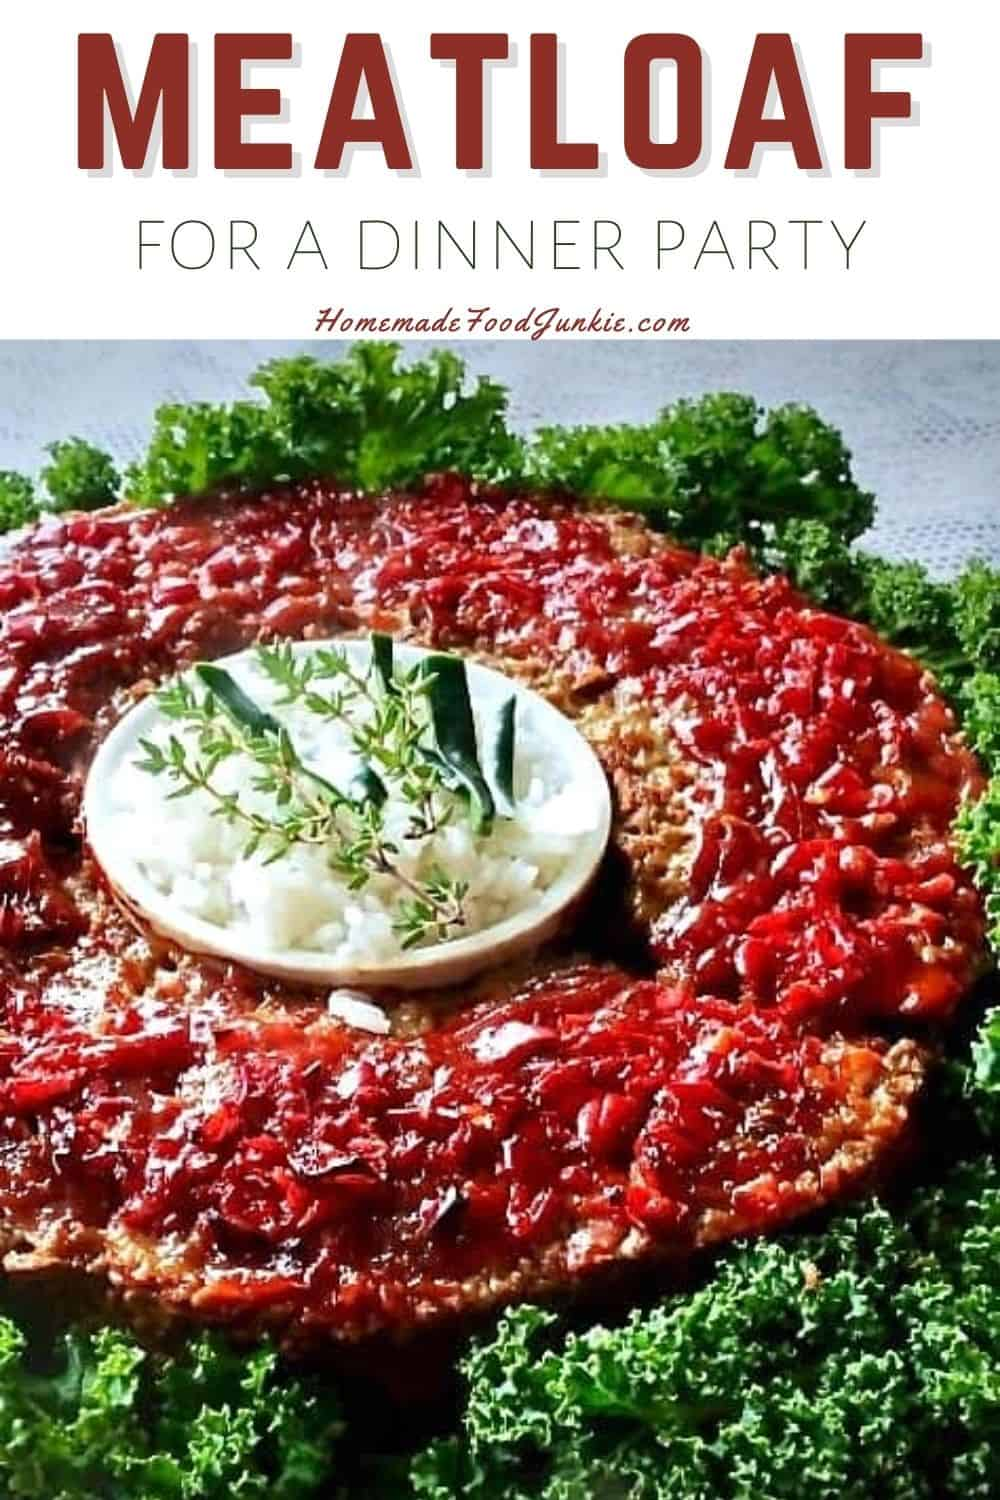 Meatloaf for a dinner party-pin image